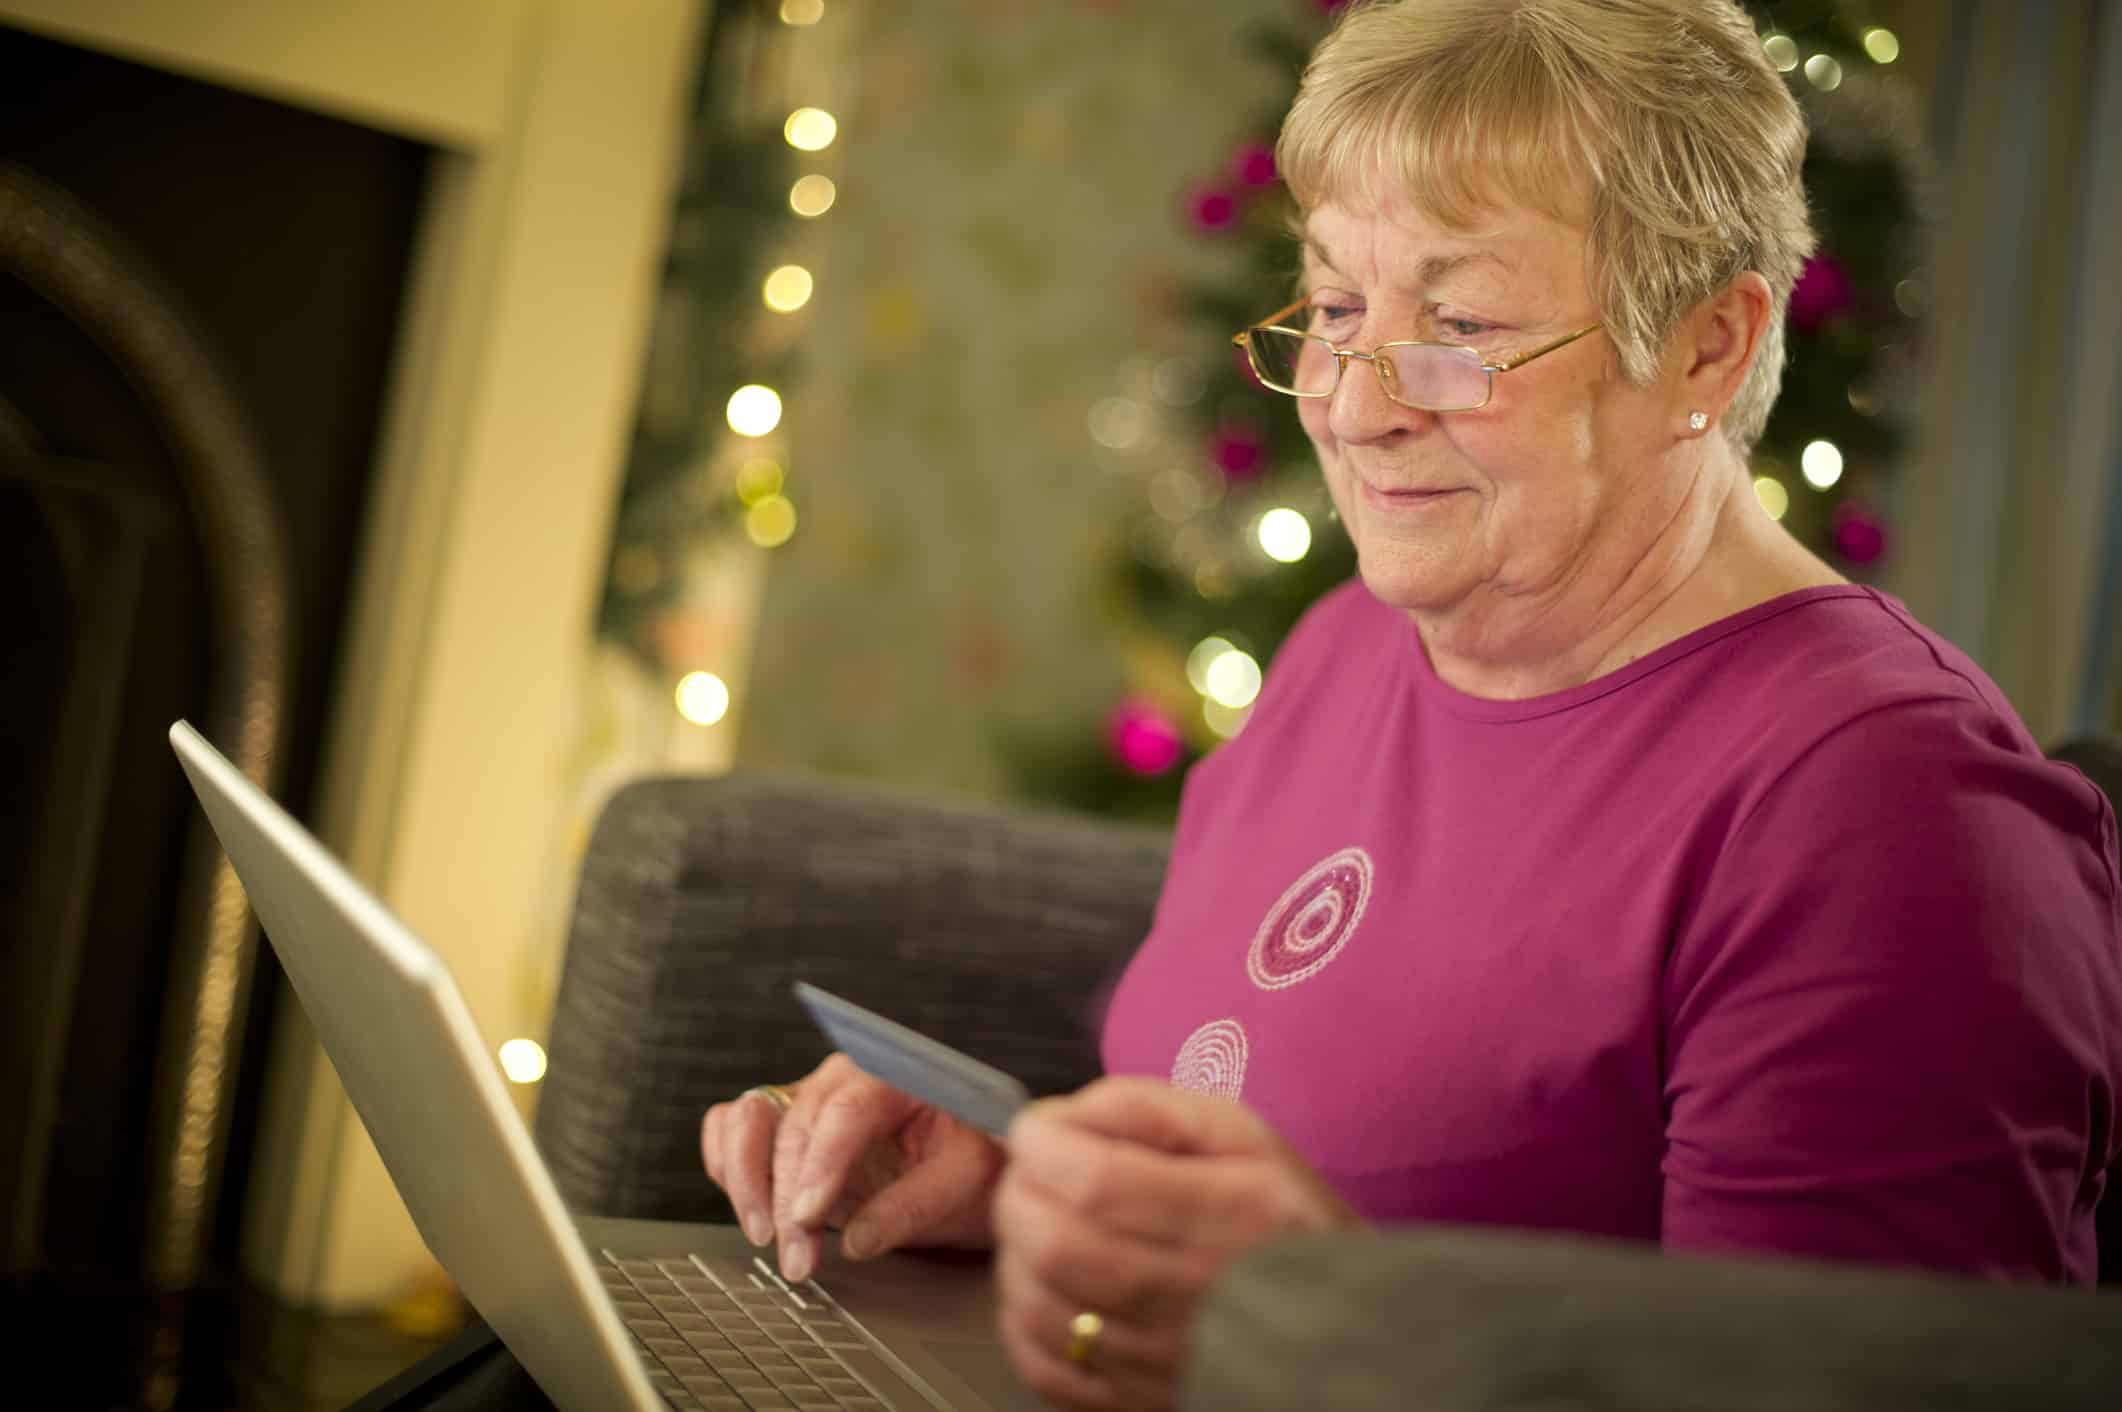 Senior Adult decides To shop online this year.